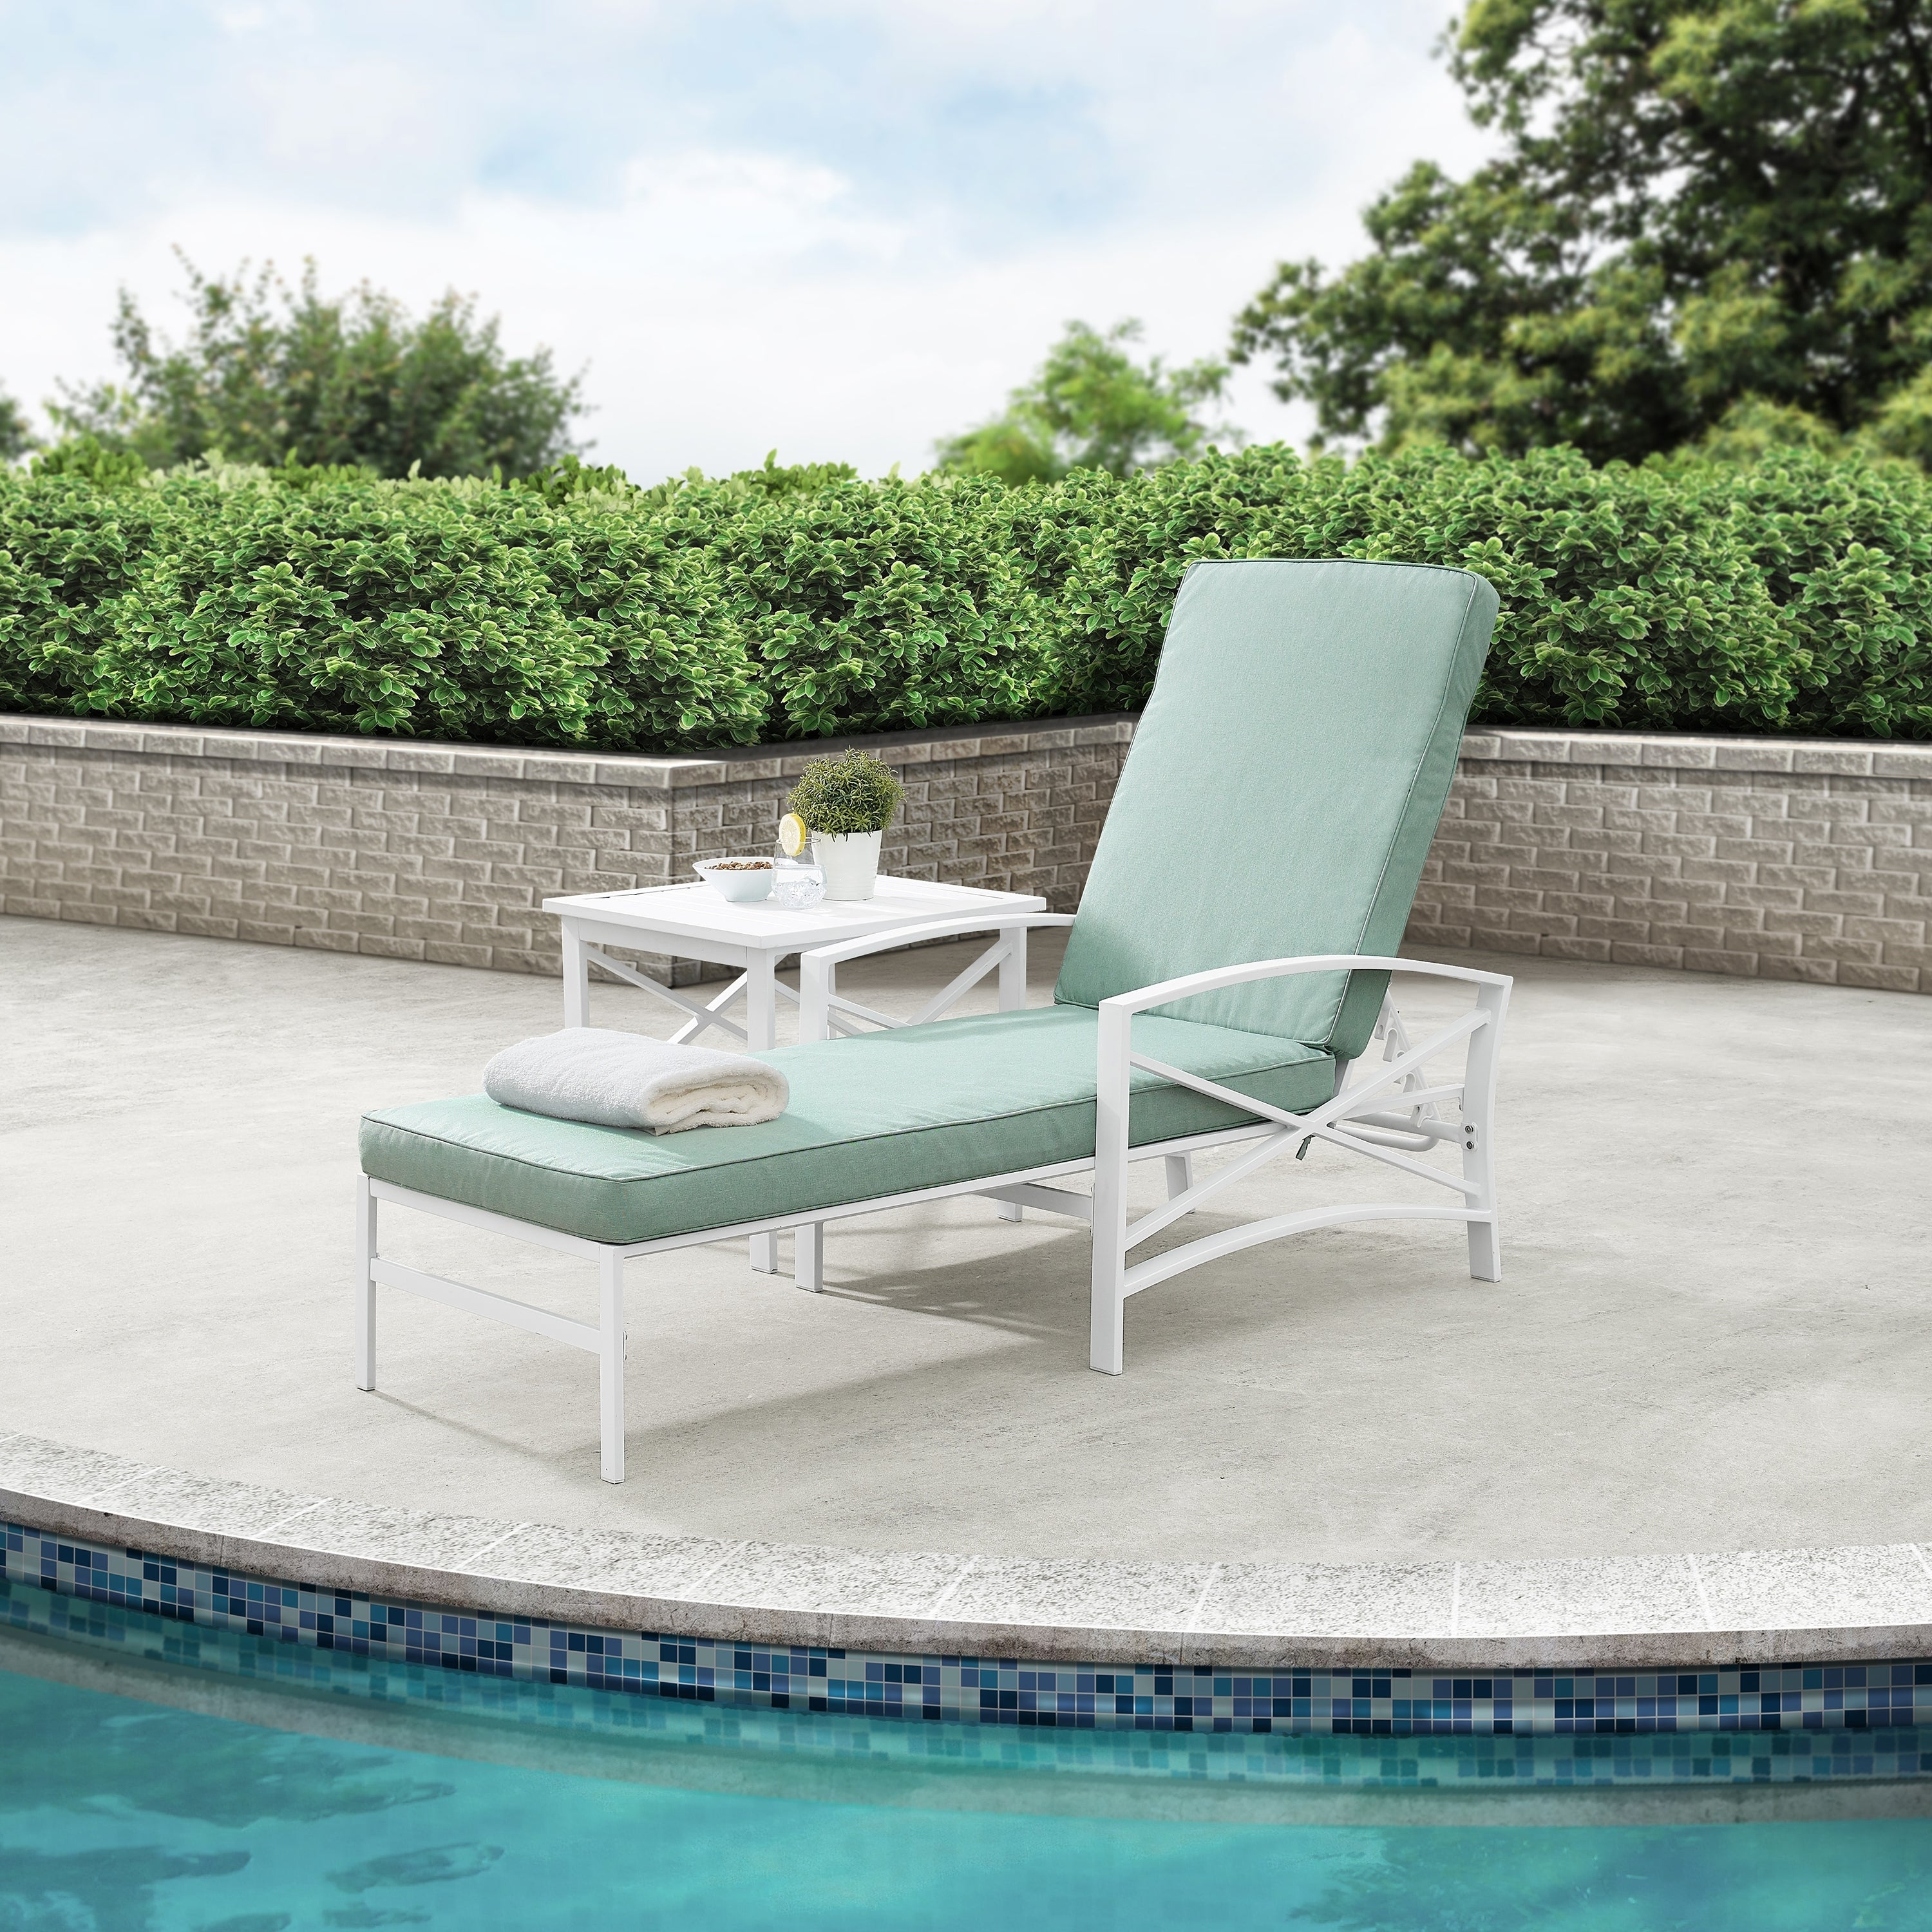 Well Known Havenside Home Davis Chaise Lounge Chair In White With Mist Cushions Regarding Chaise Lounge Chairs In Bronze With Mist Cushions (Gallery 18 of 25)